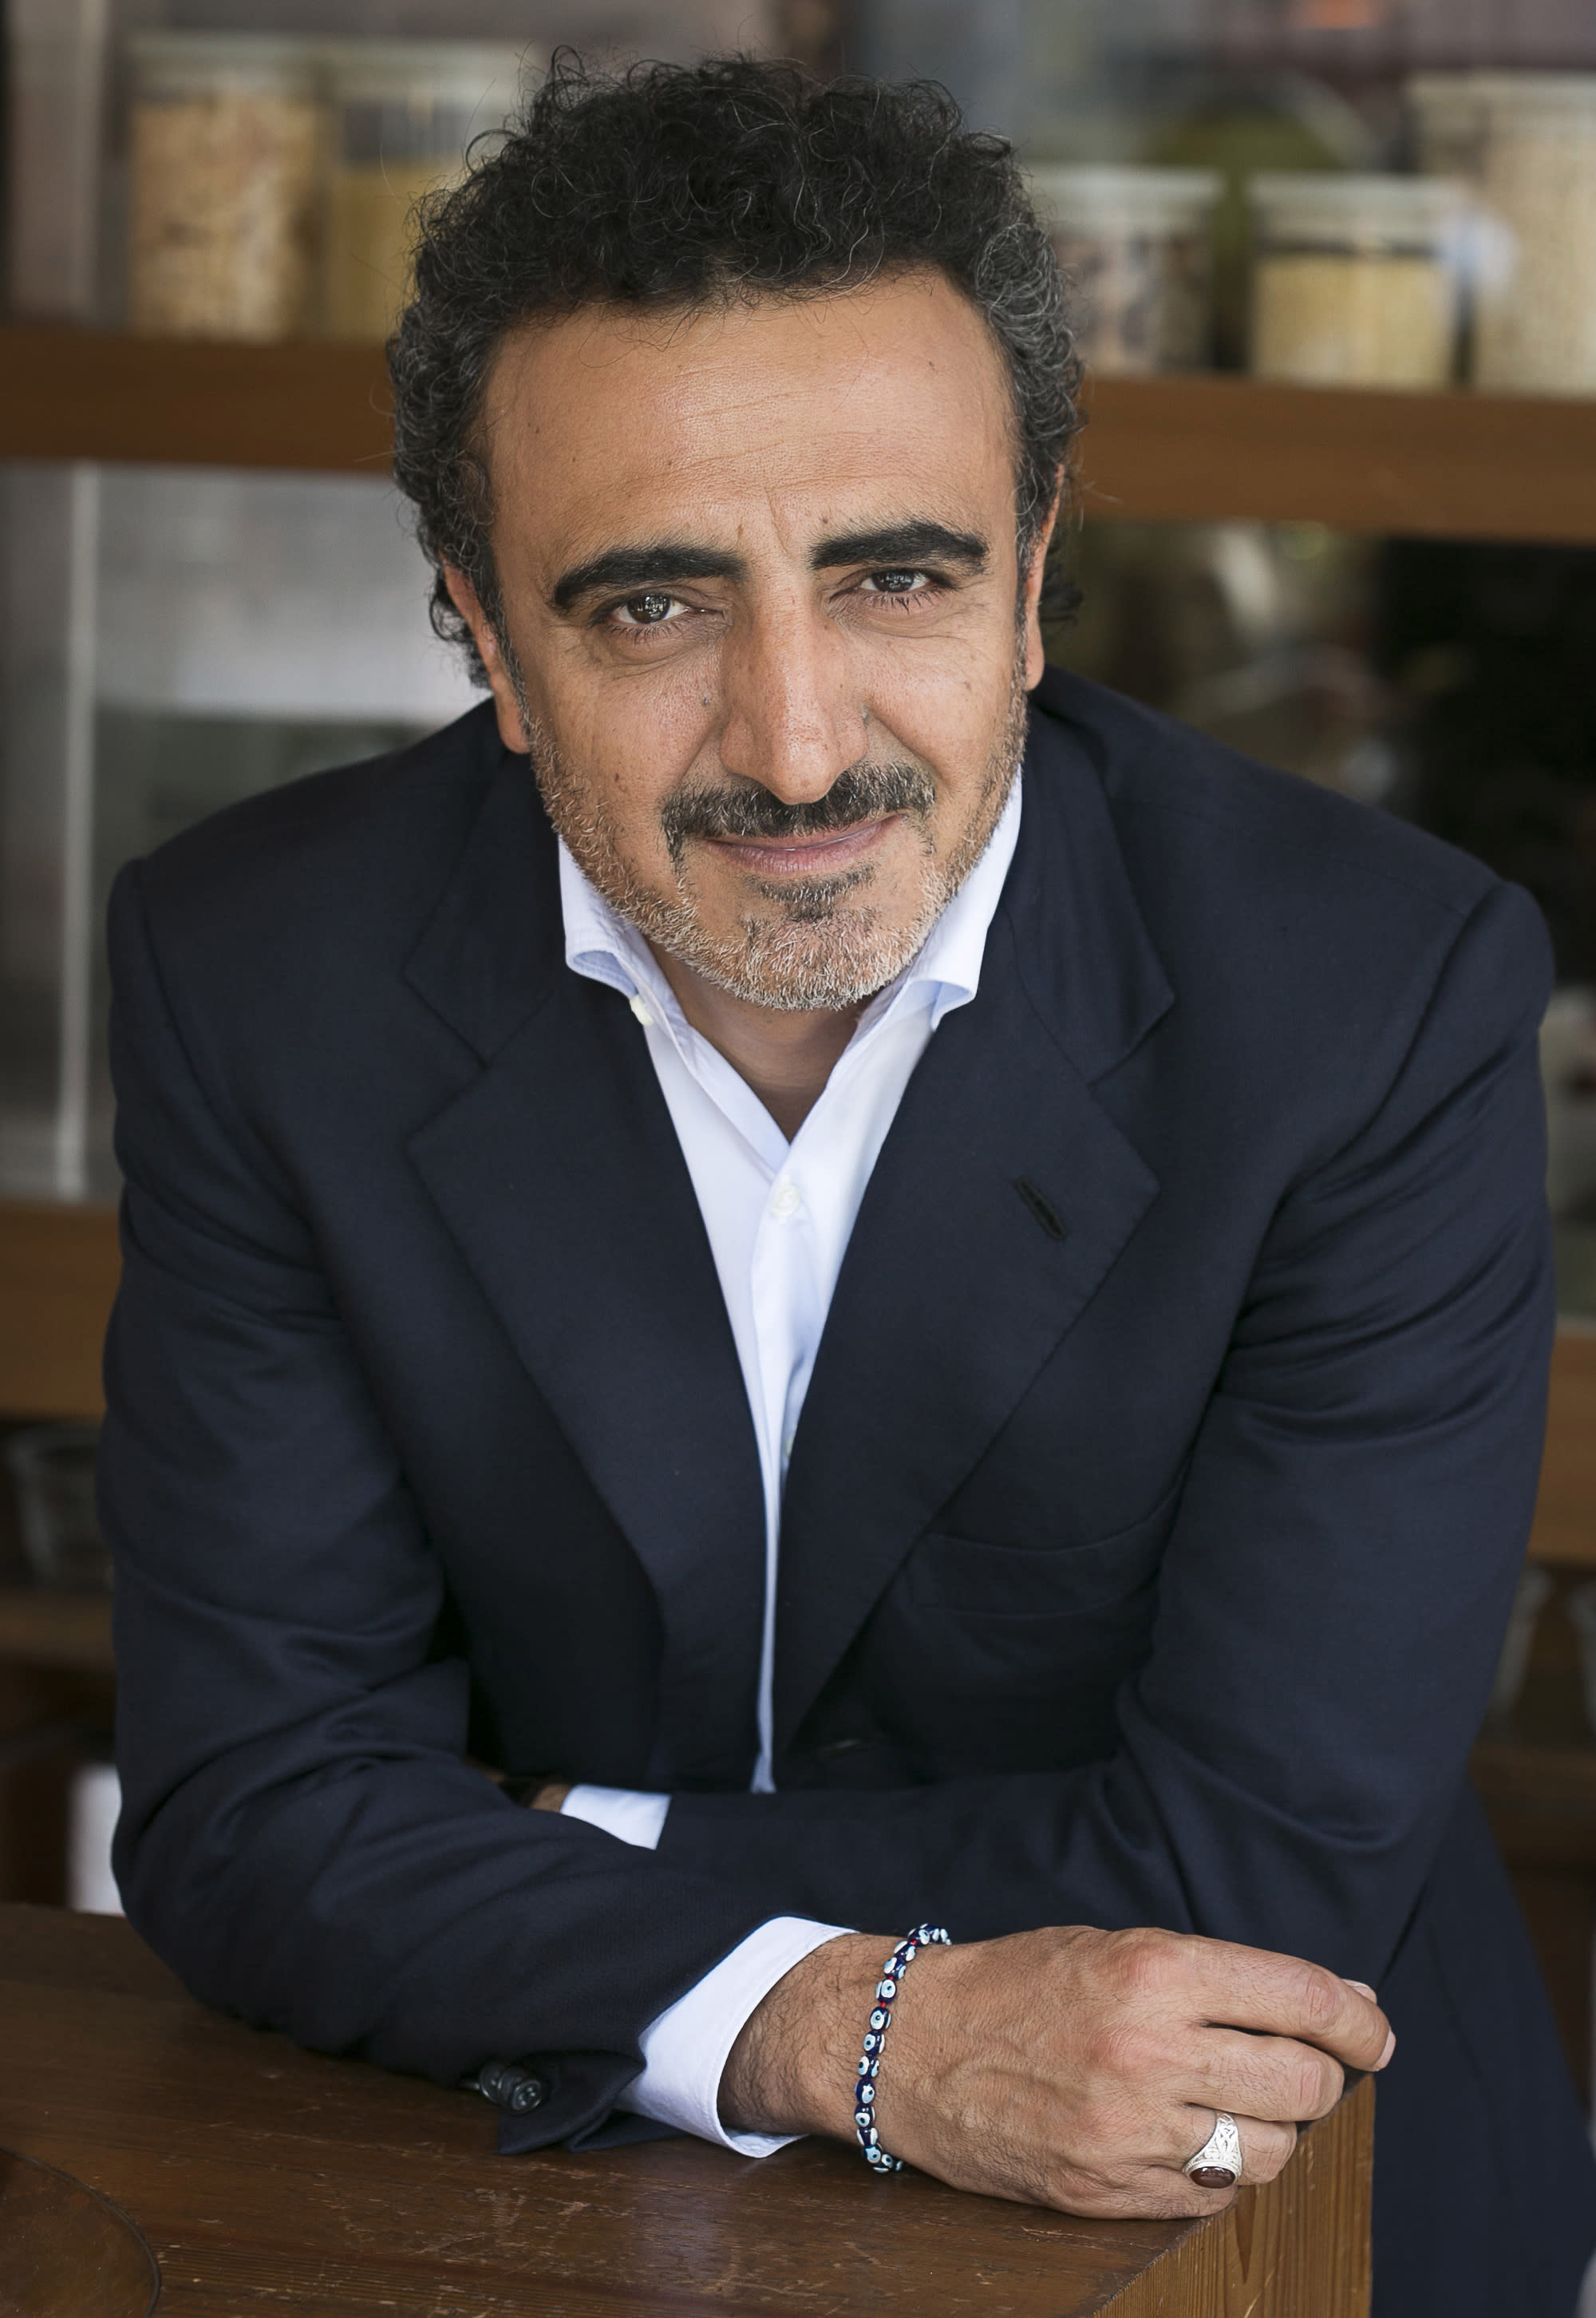 Chobani CEO pledges to donate most of wealth